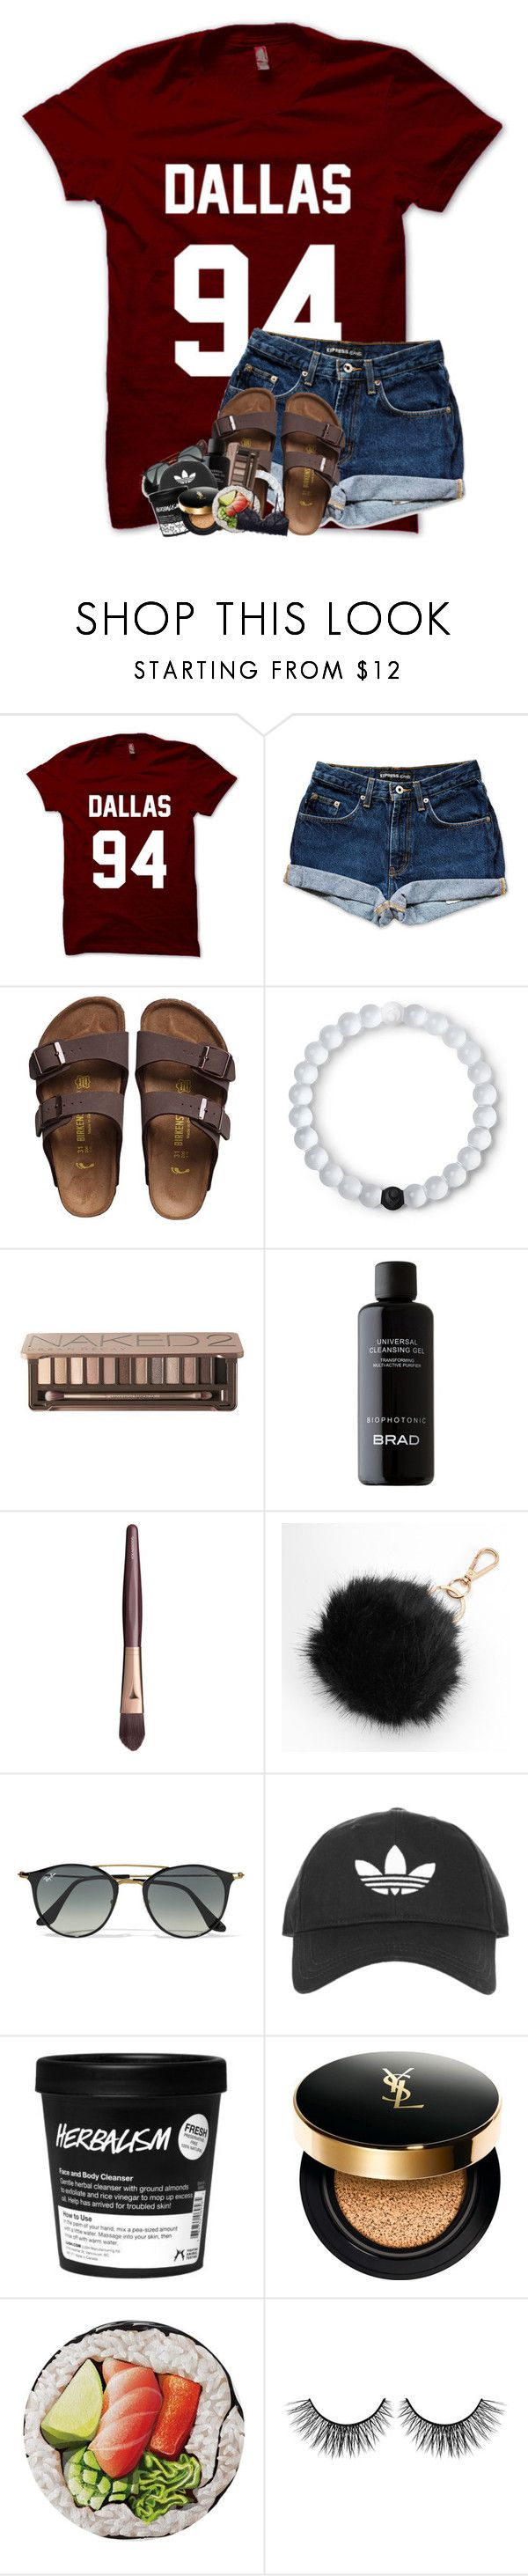 """""""better single than taken for granted"""" by theblonde07 ❤ liked on Polyvore featuring Birkenstock, Lokai, Urban Decay, Charlotte Tilbury, Mudd, Ray-Ban, Topshop, Yves Saint Laurent, Round Towel Co. and tarte"""